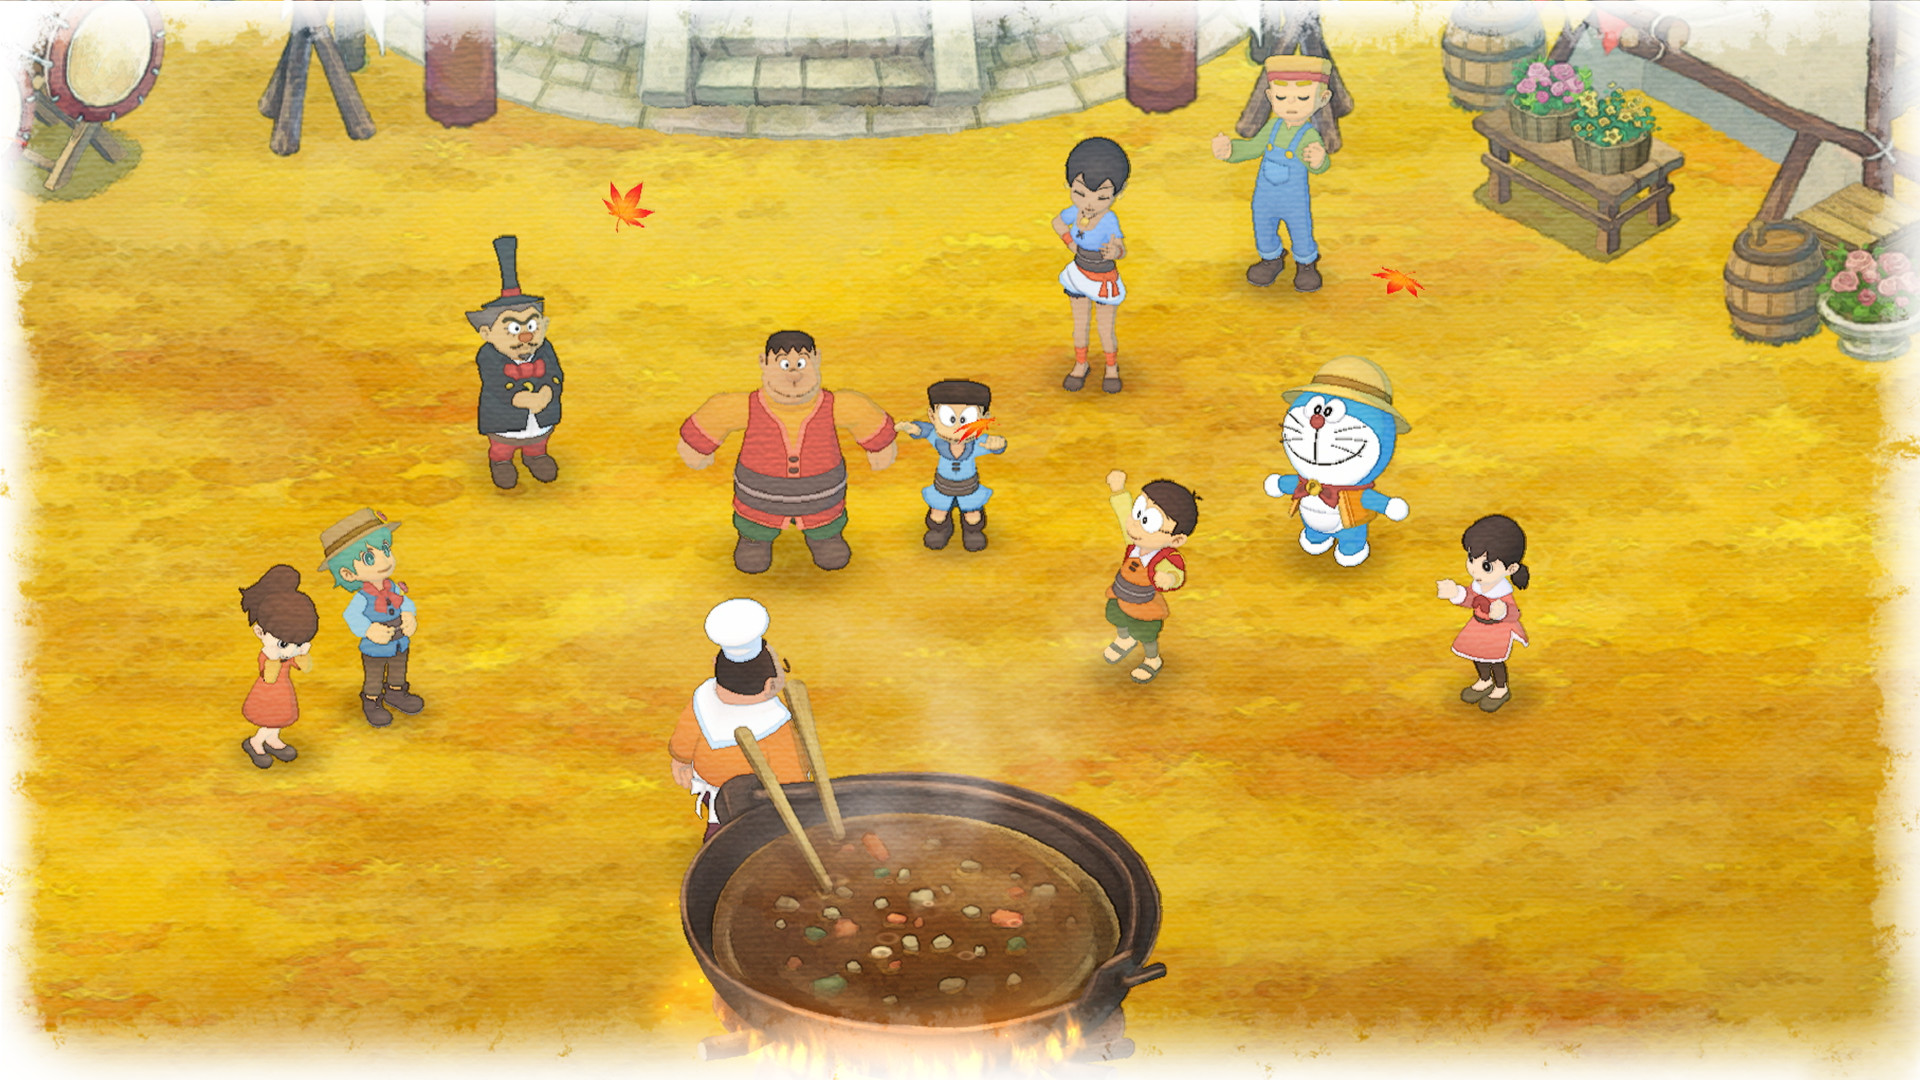 Doraemon Story of Seasons Screenshot 2